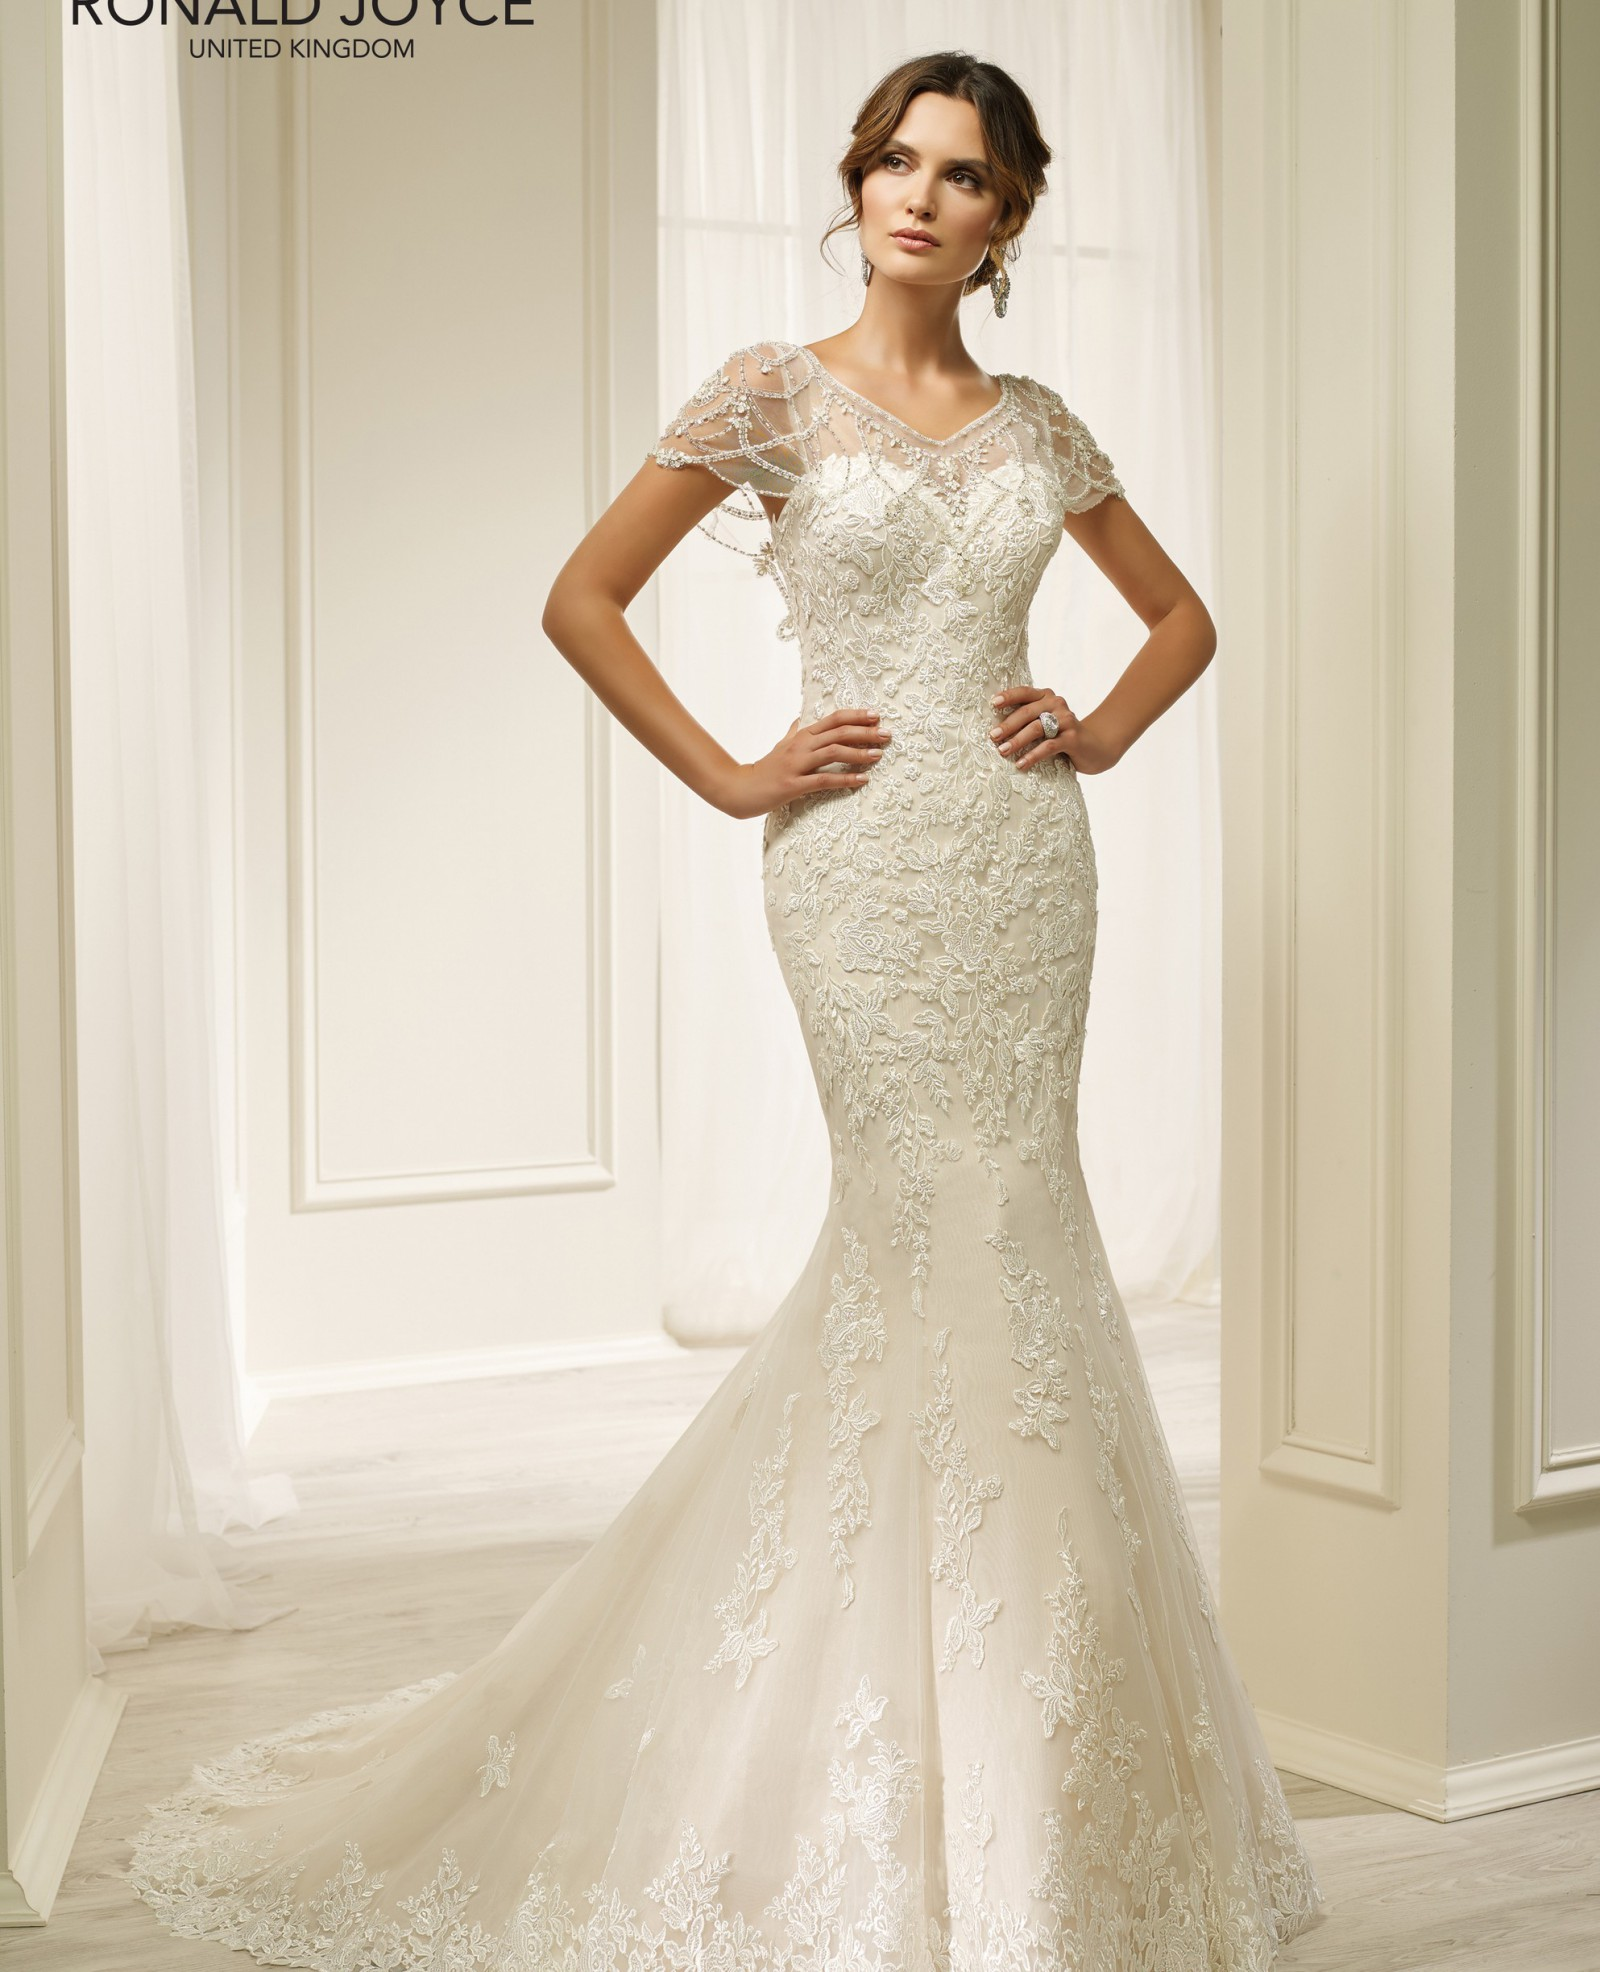 Wedding Dresses For Over 50s Uk: Ronald Joyce Hadara New Wedding Dress On Sale 50% Off